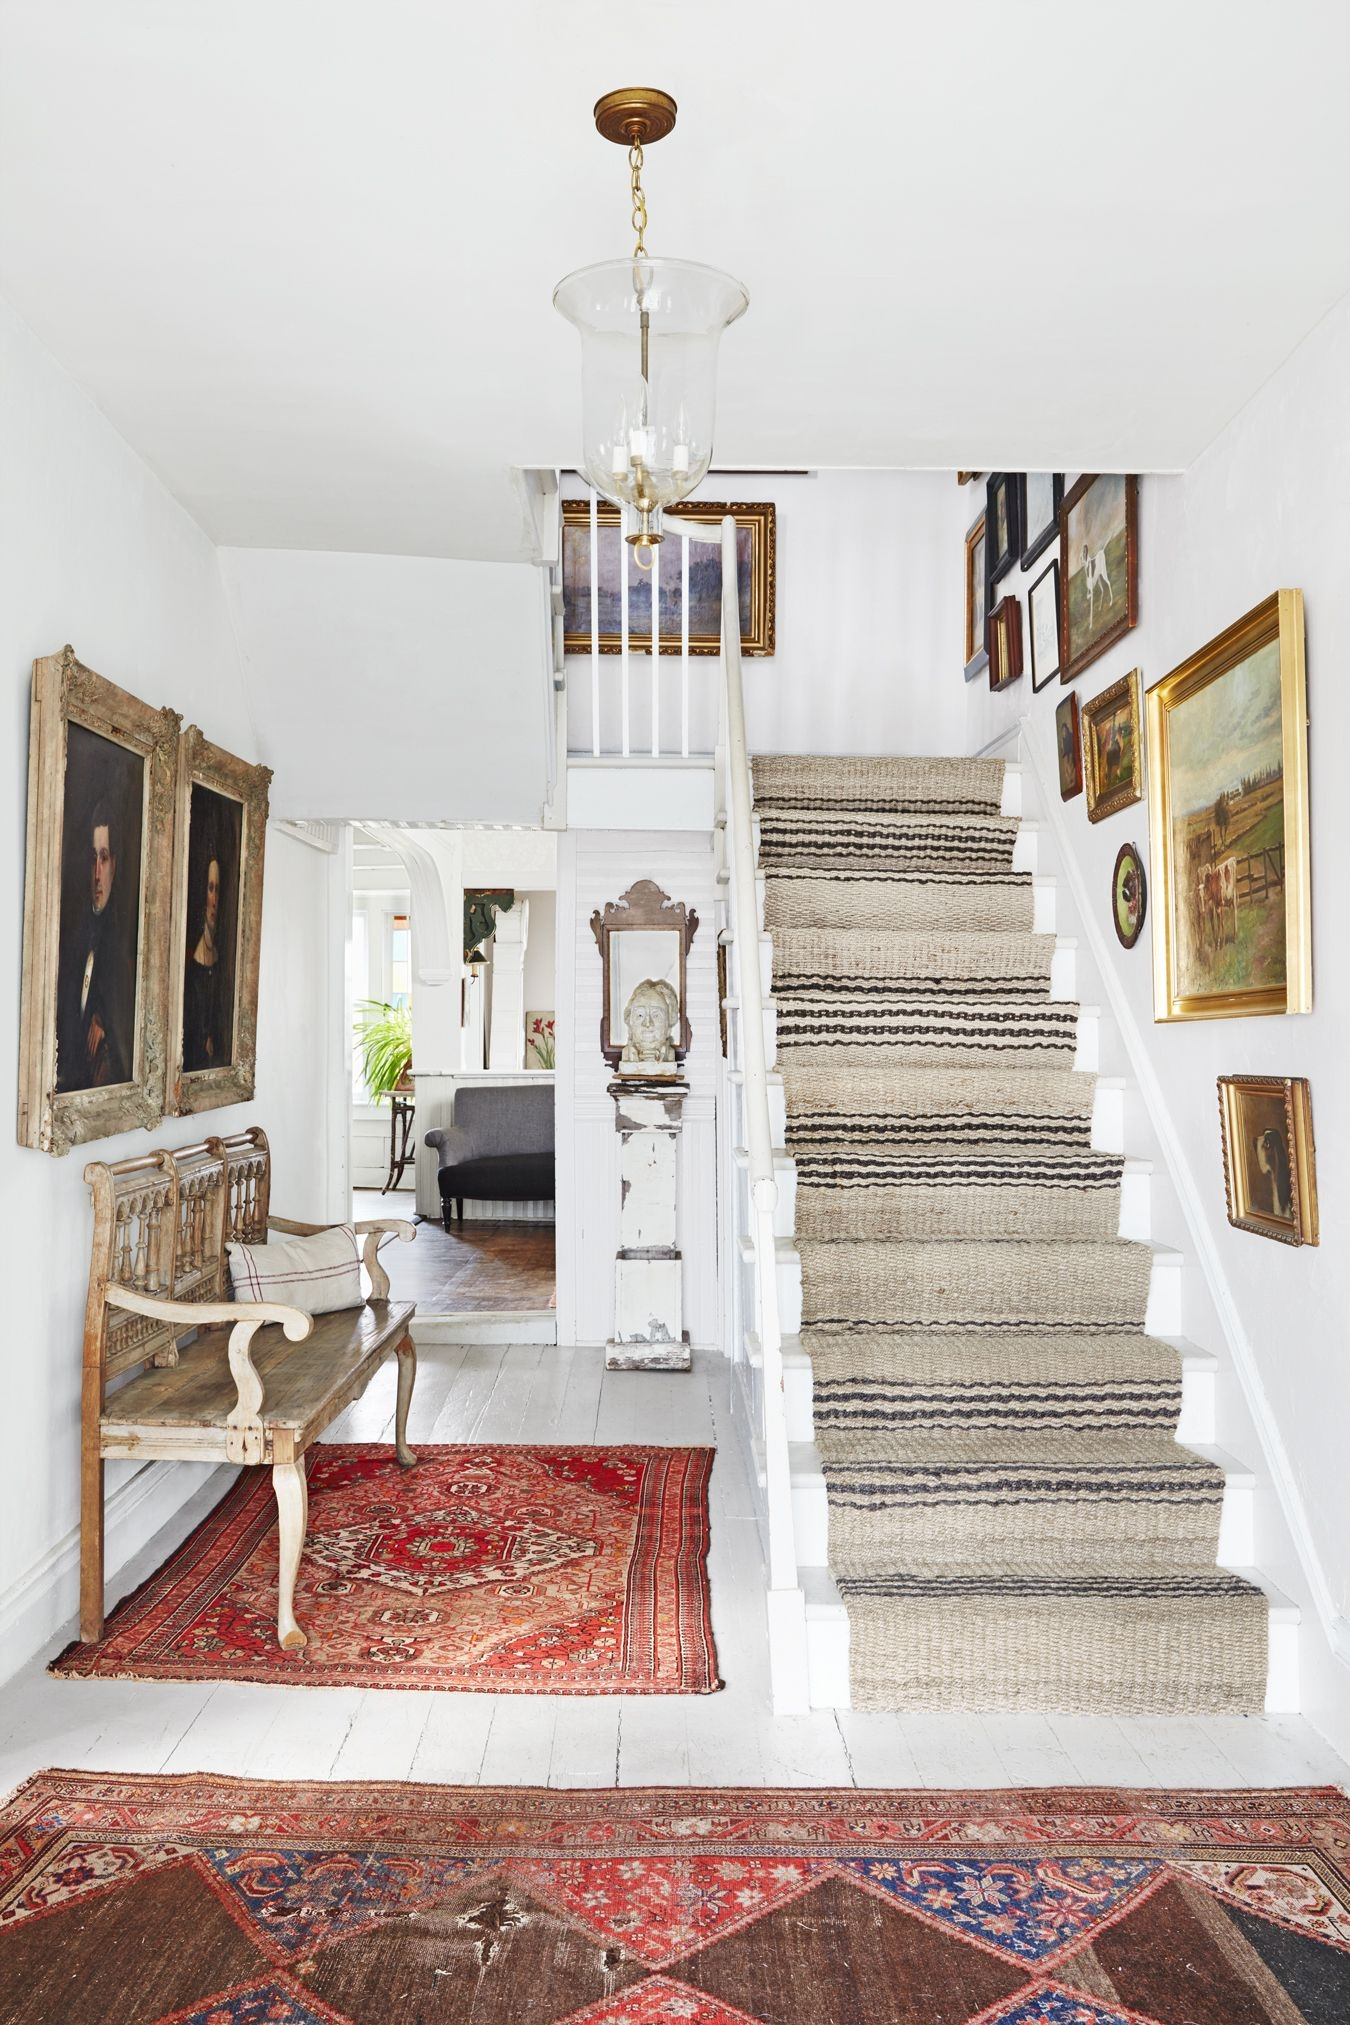 55 Best Staircase Ideas Top Ways To Decorate A Stairway | Simple Designs Of Stairs Inside House | Cheap | Fancy House | Ultra Modern | Space | Hidden